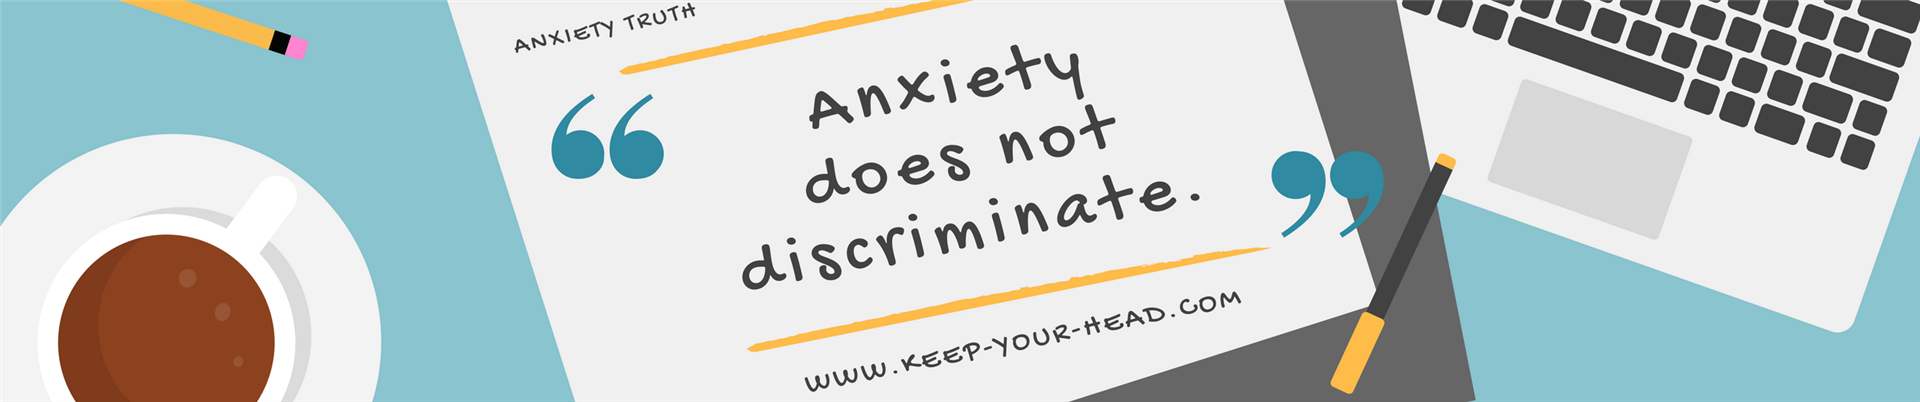 Anxiety does not discriminate Blog Post image banner